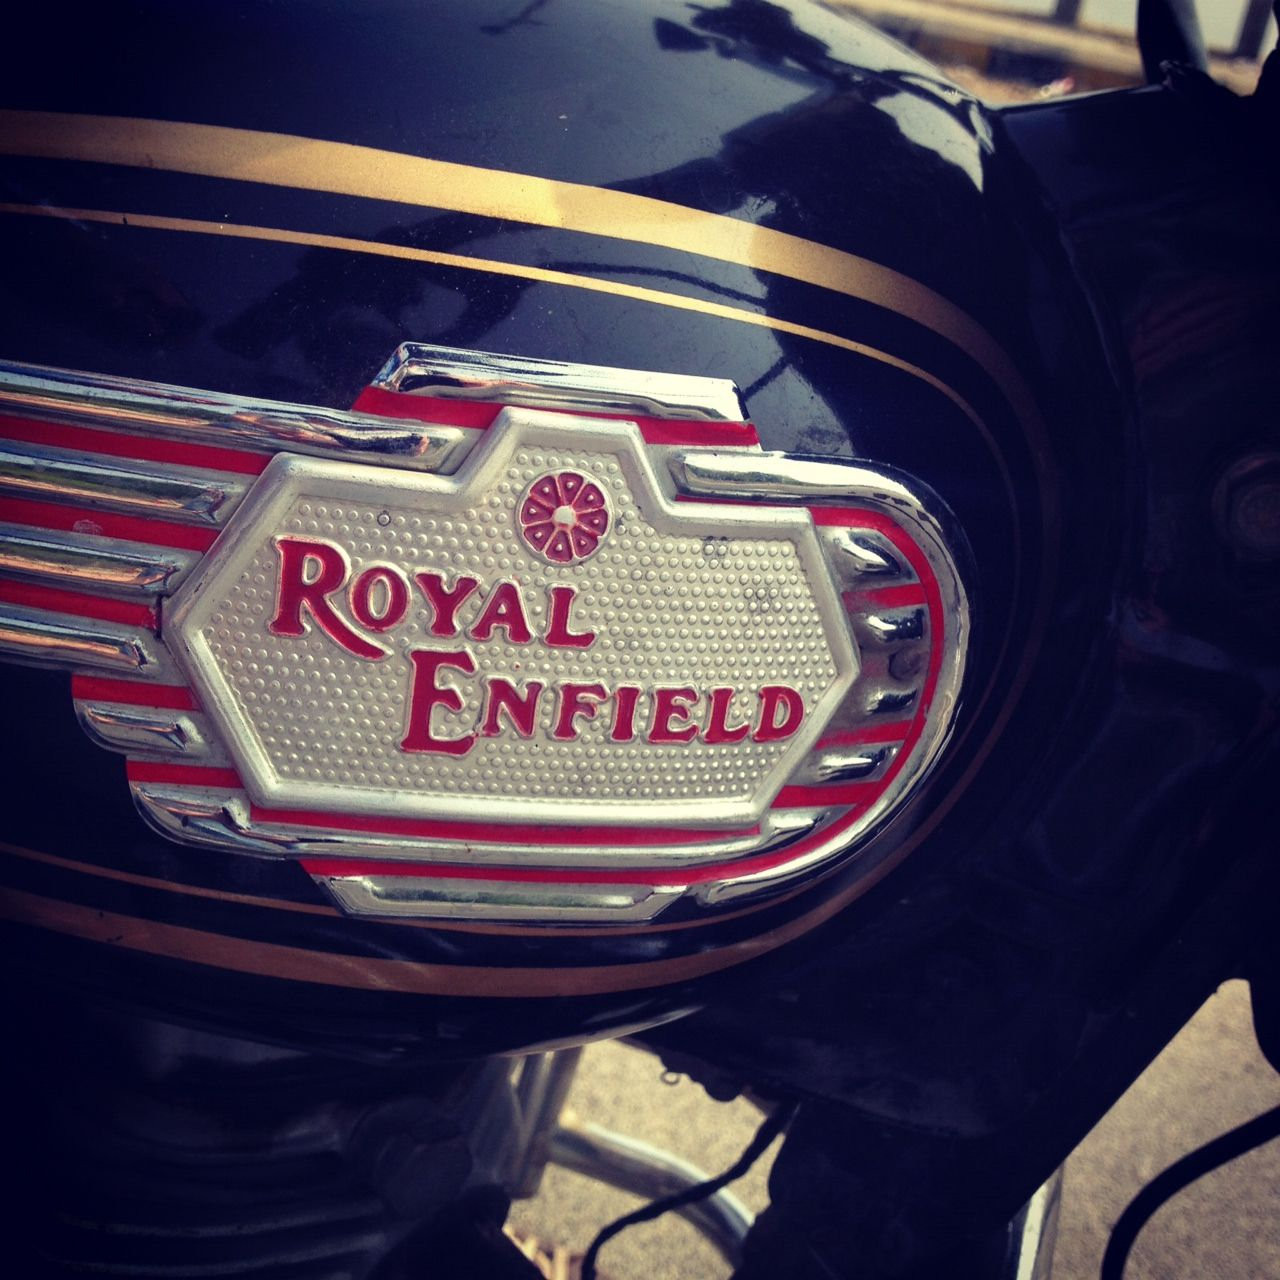 ^ 1000+ images about ool oyal nfield Motorcycles on Pinterest